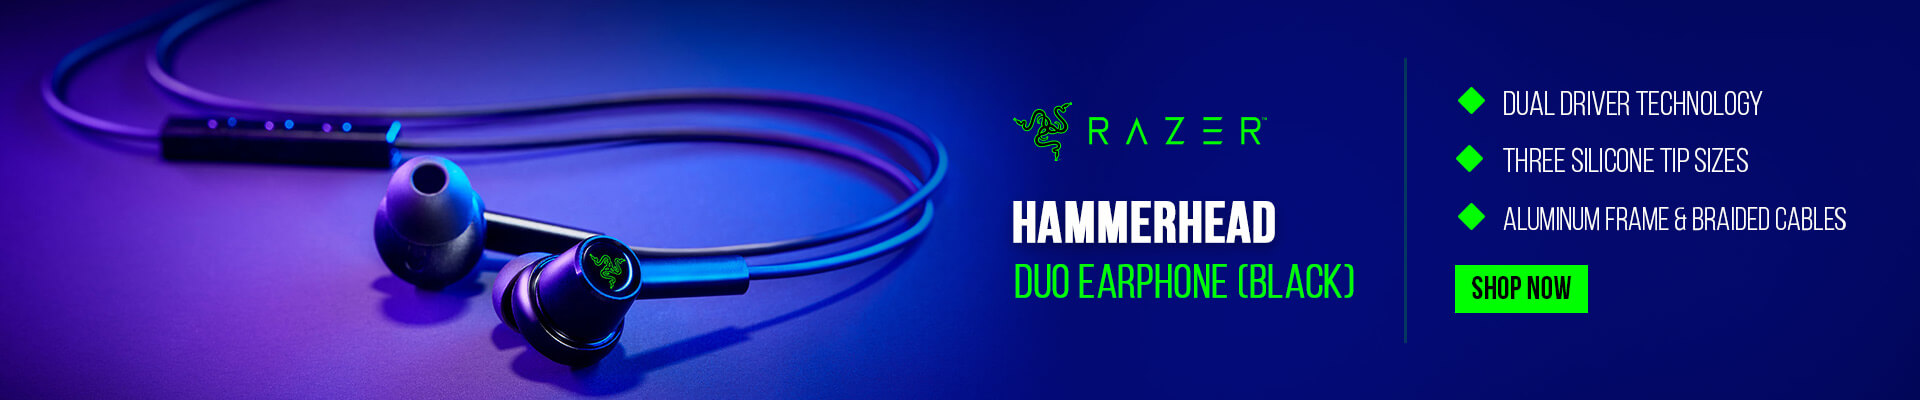 Razer Hammerhead Duo Earphone (Black)